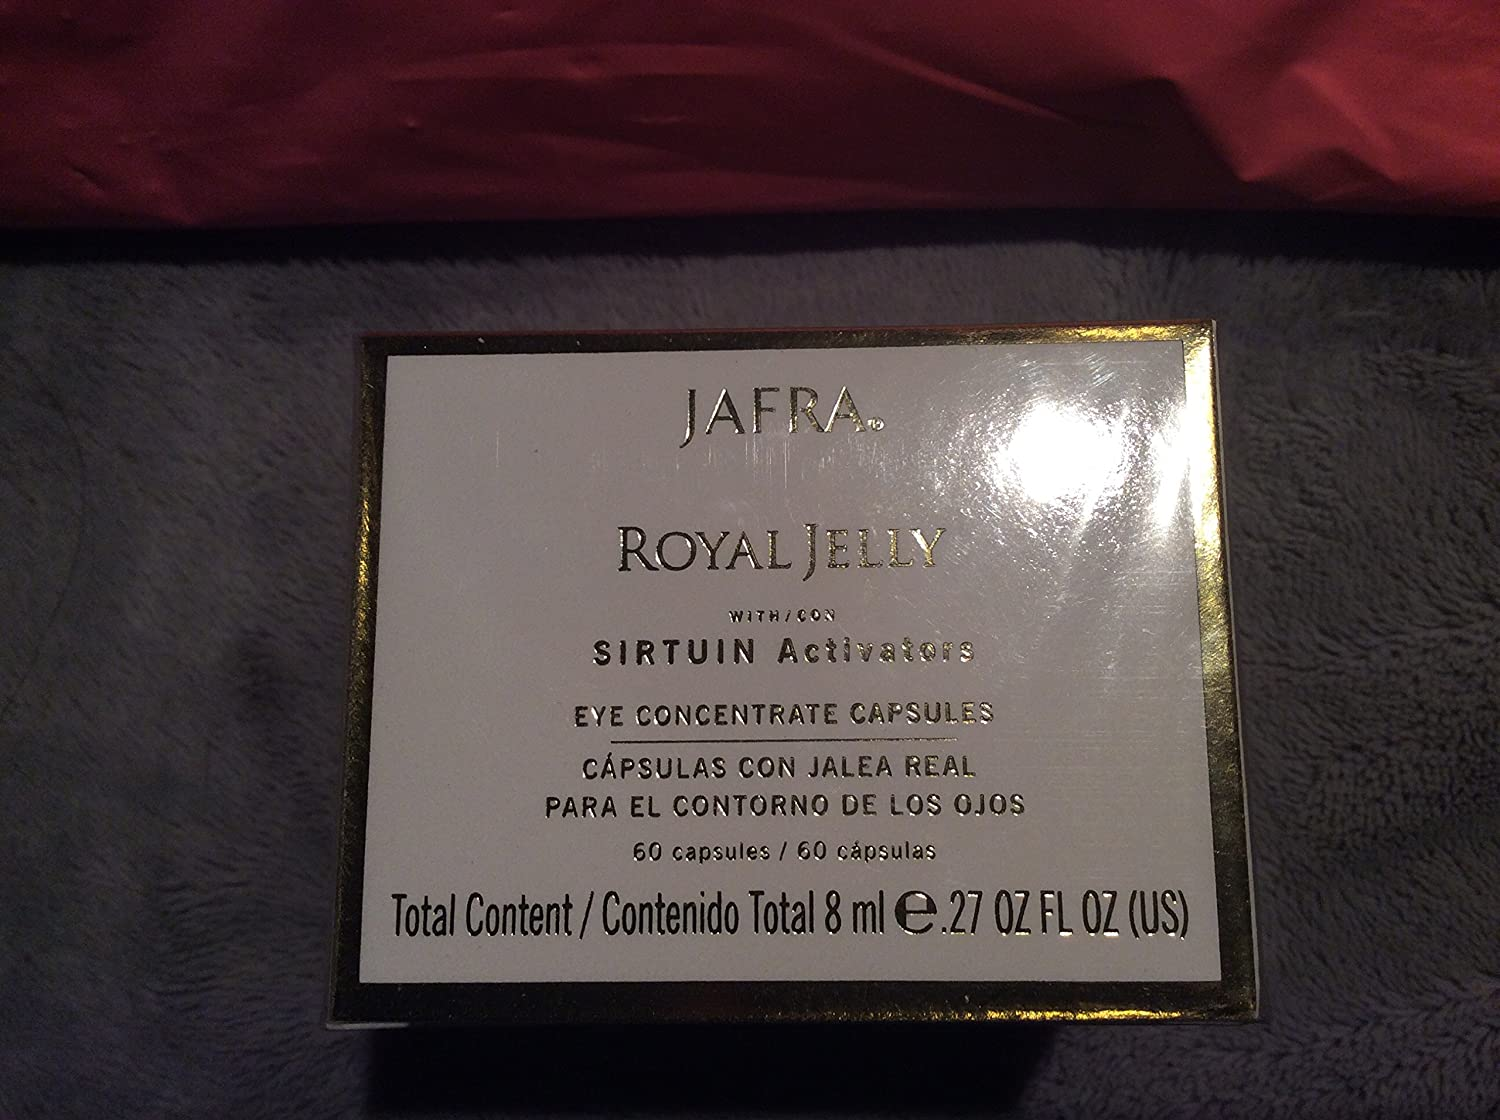 Jafra Royal Jelly Limited price Eye Concentrate Capsules 60 Miami Mall fl. o capsules .27